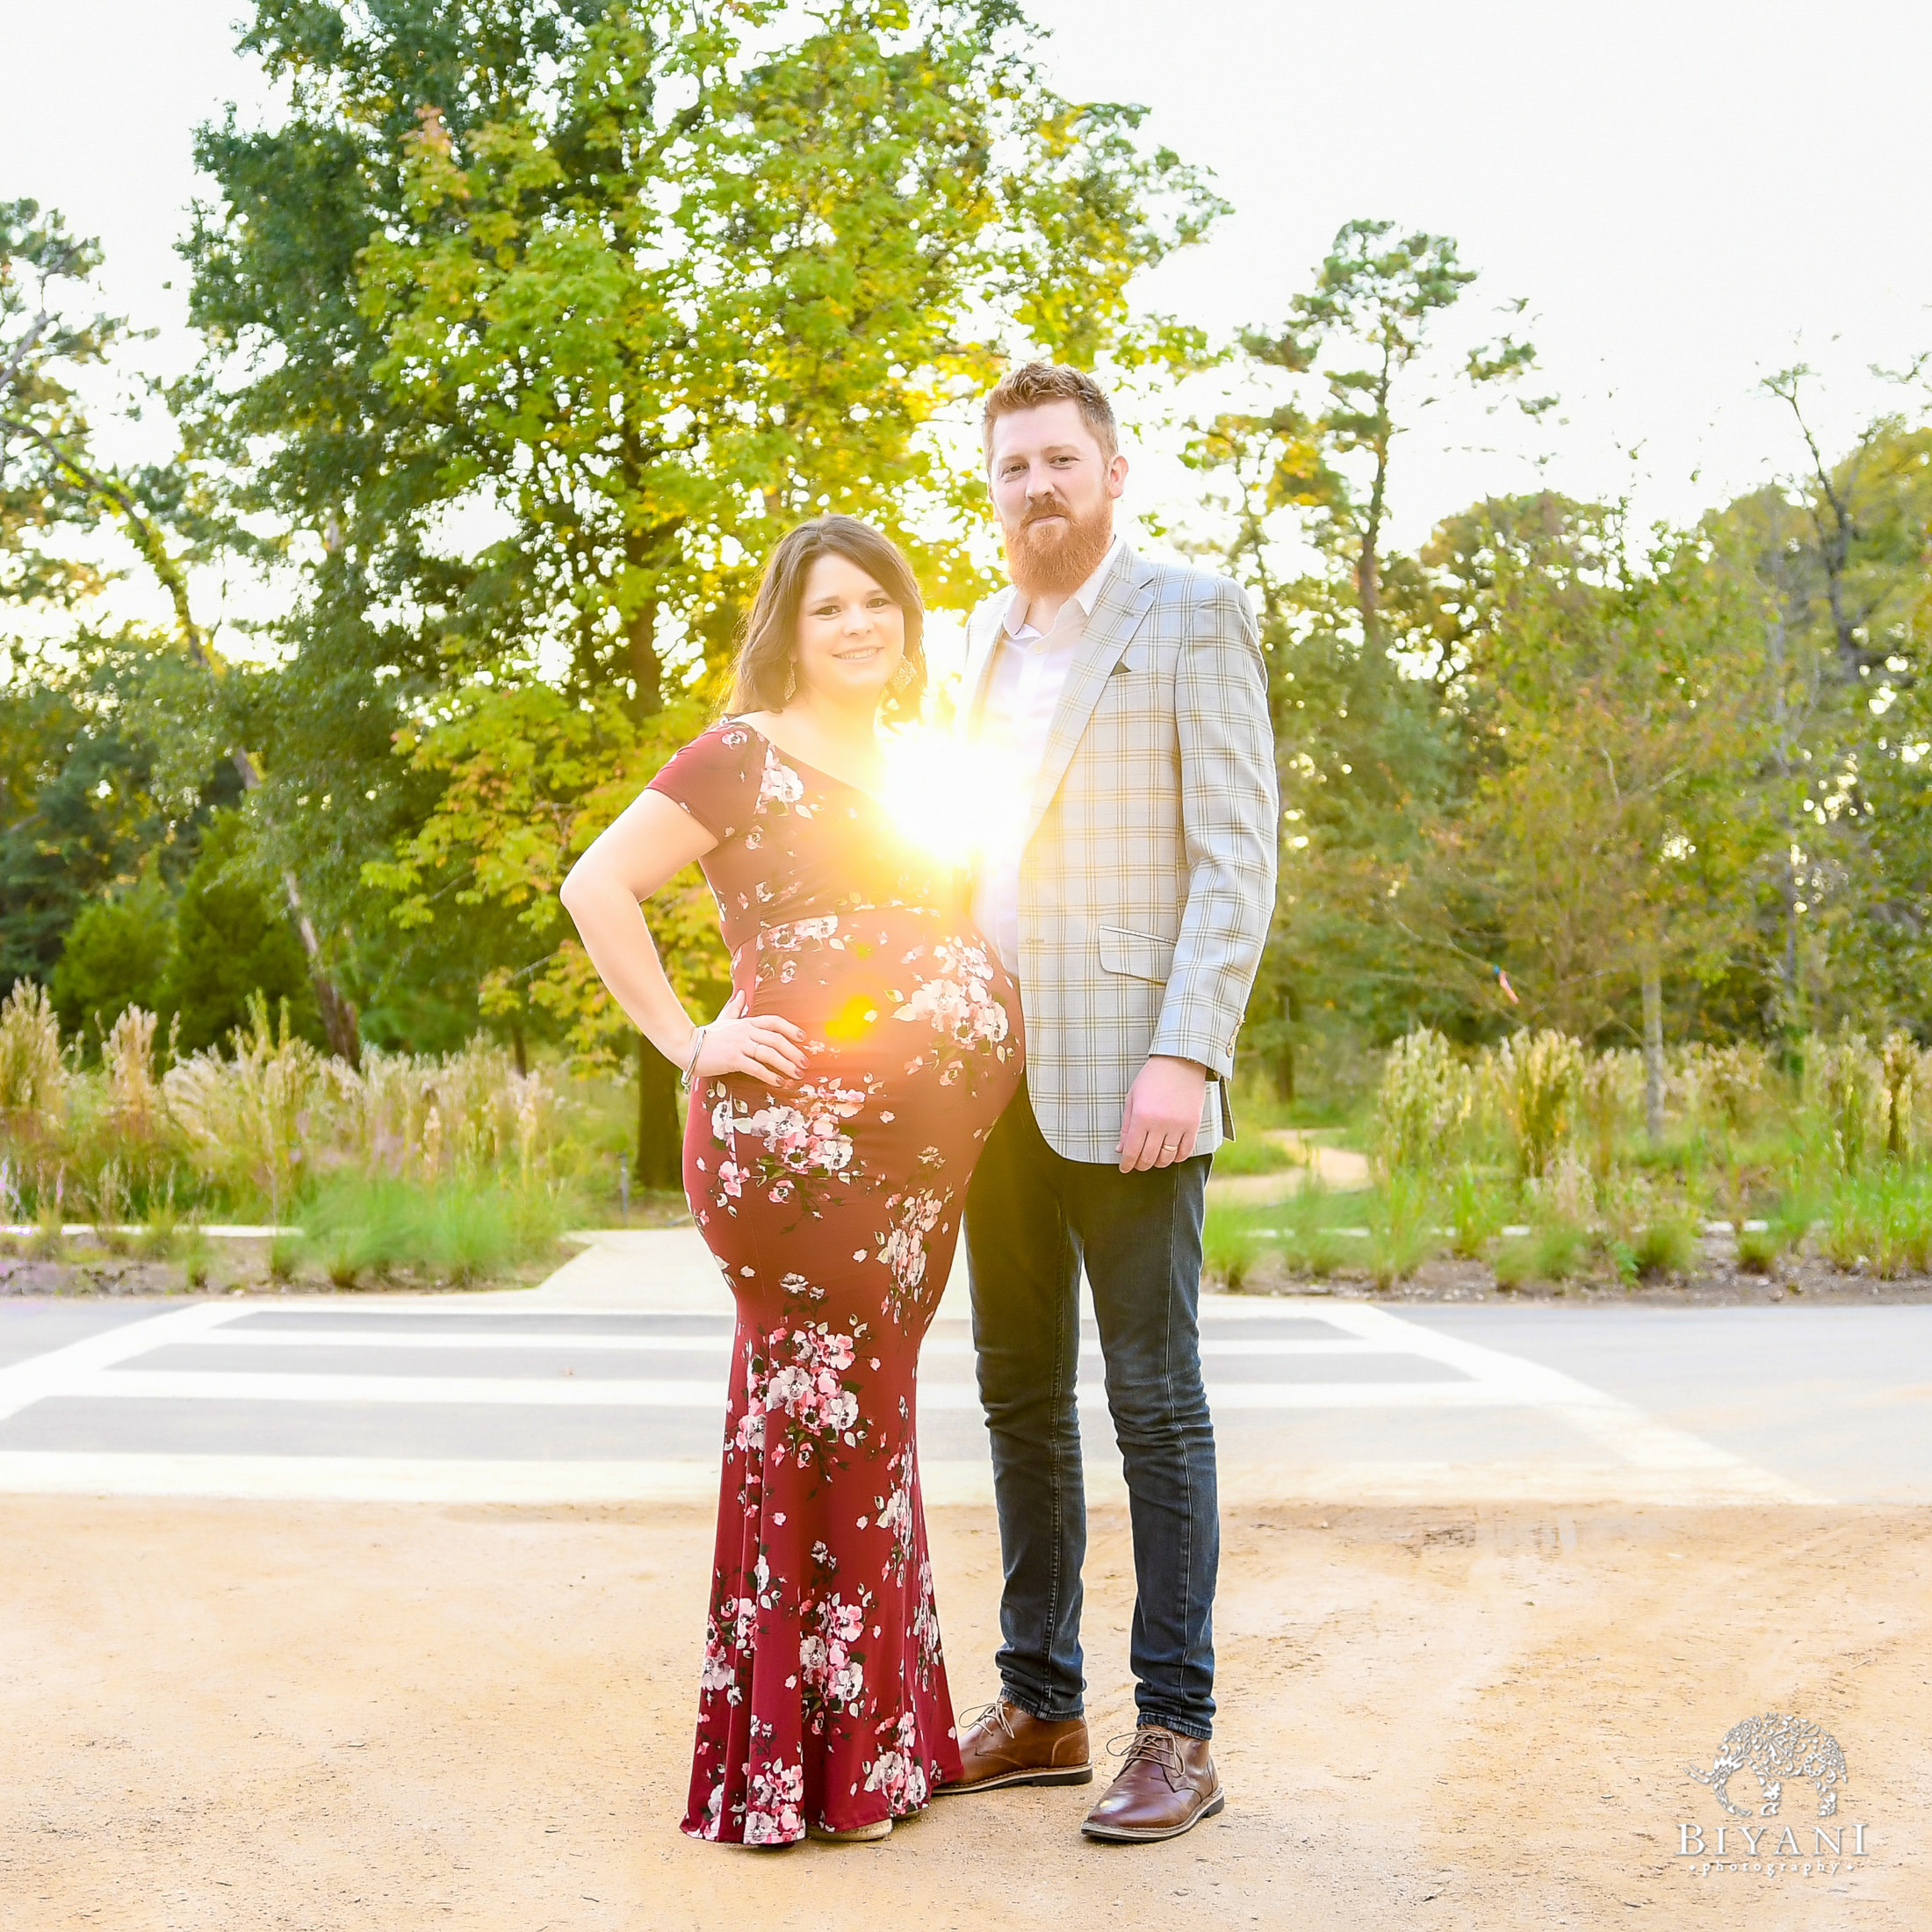 Houston Maternity Photos at Houston Arboretum